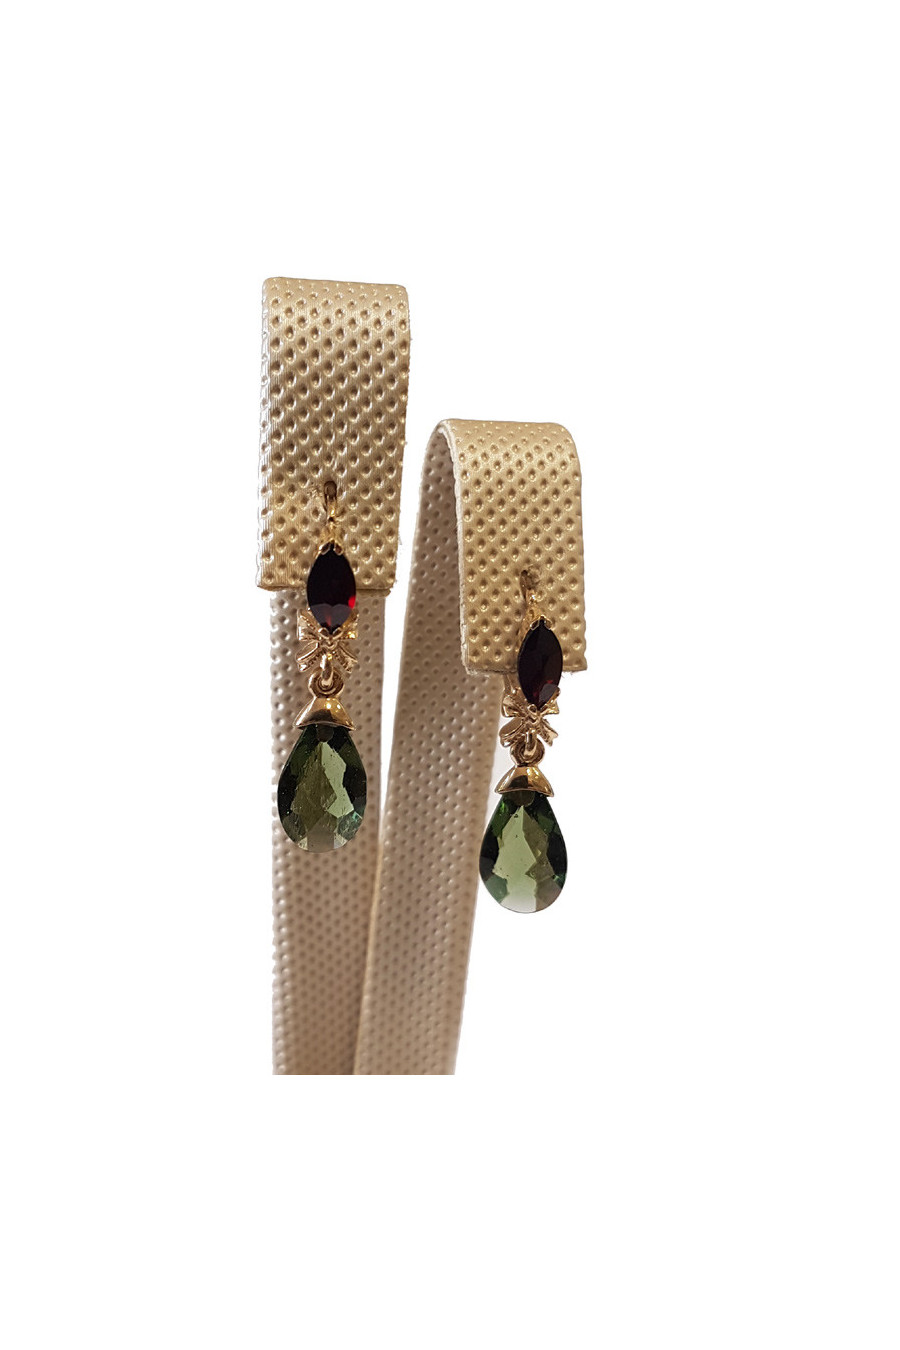 Gold earrings with garnet and moldavite